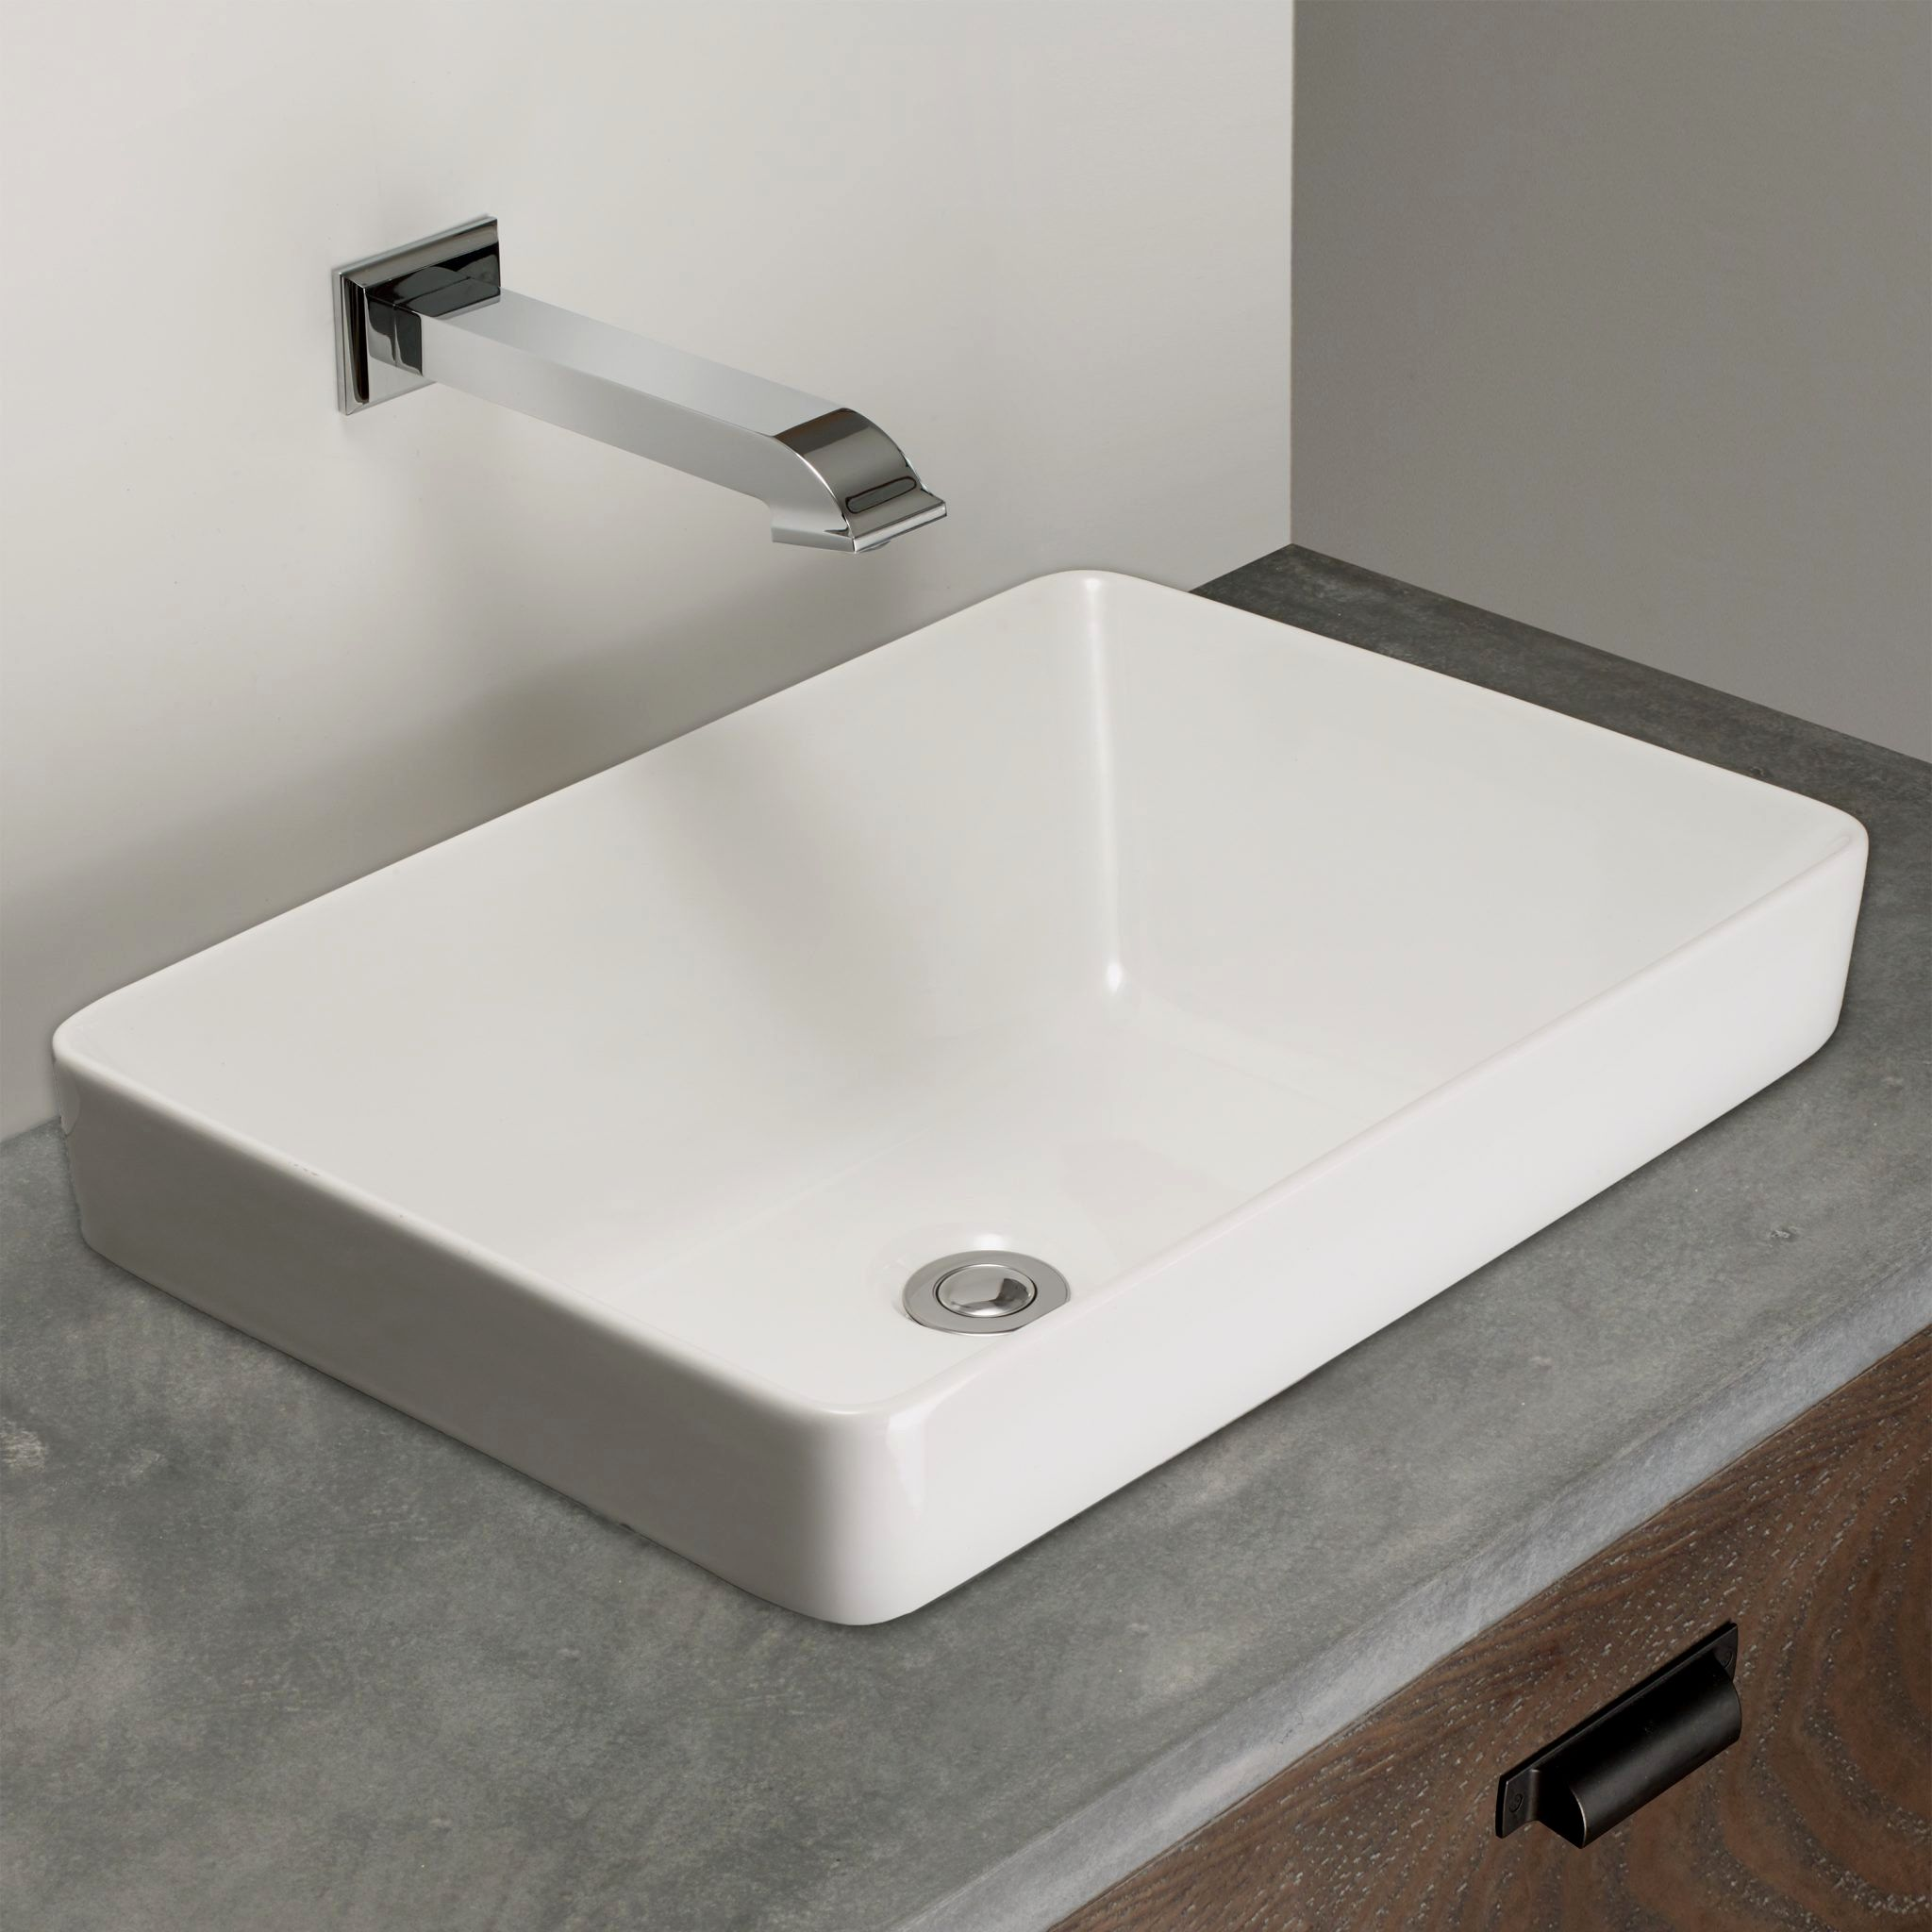 Elegant Bathroom Sinks: Elegant Rectangular Bathroom Sinks Online